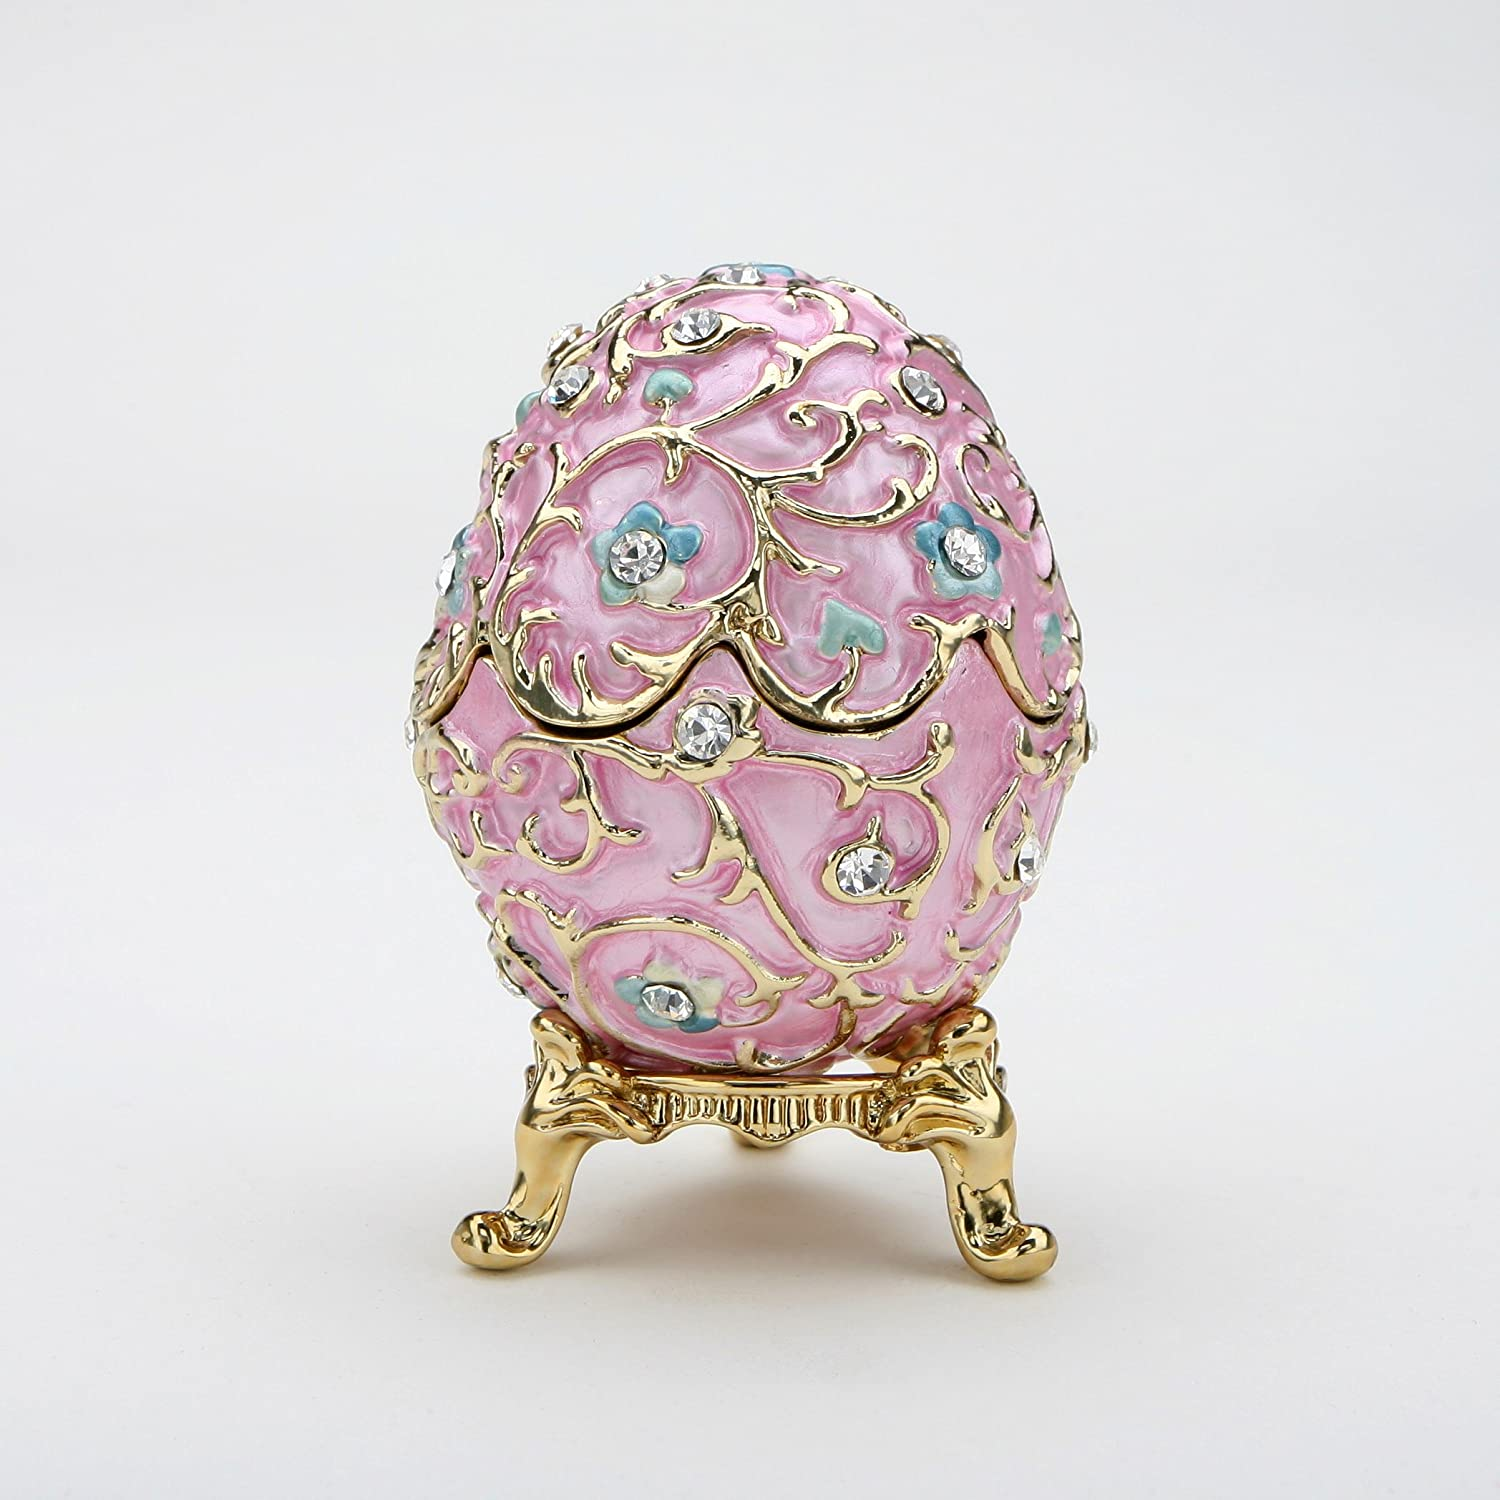 Swarovski Crystals Flowered Pink Faberge Style Egg Box Ring Jewelry